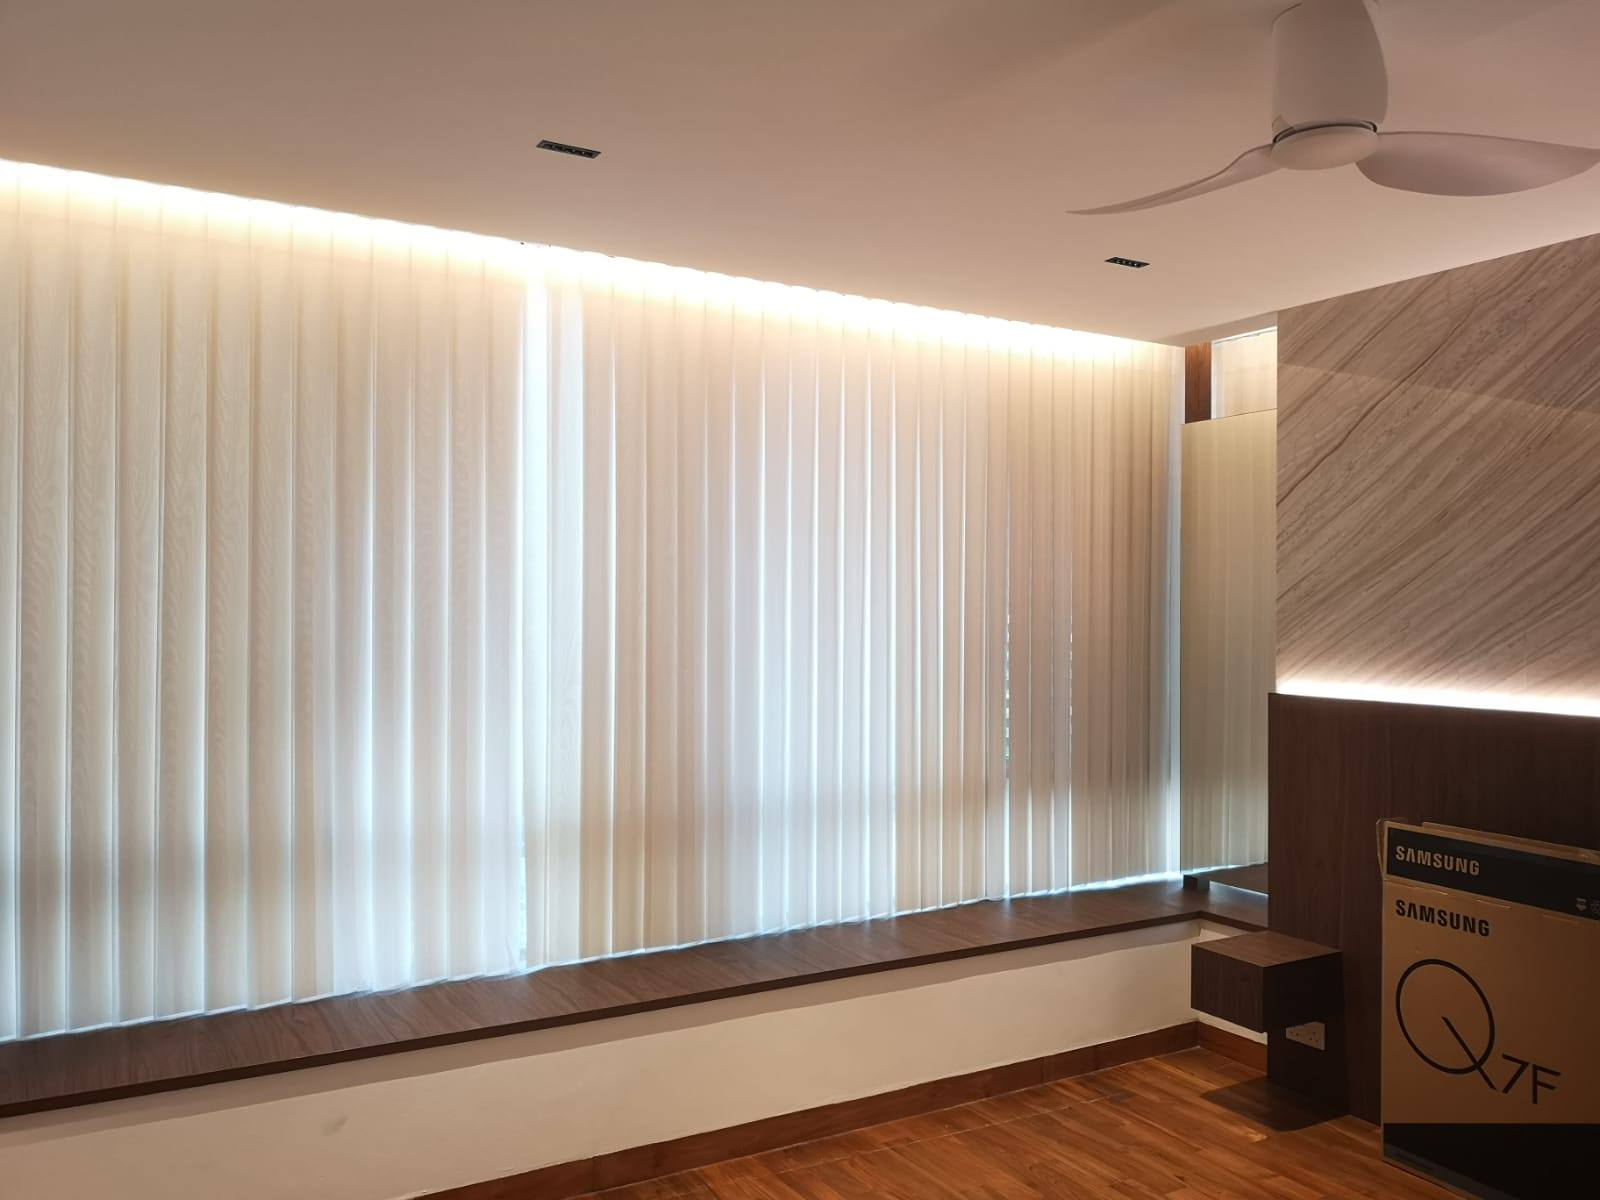 Why is a Smart Curtain better than a traditional one?